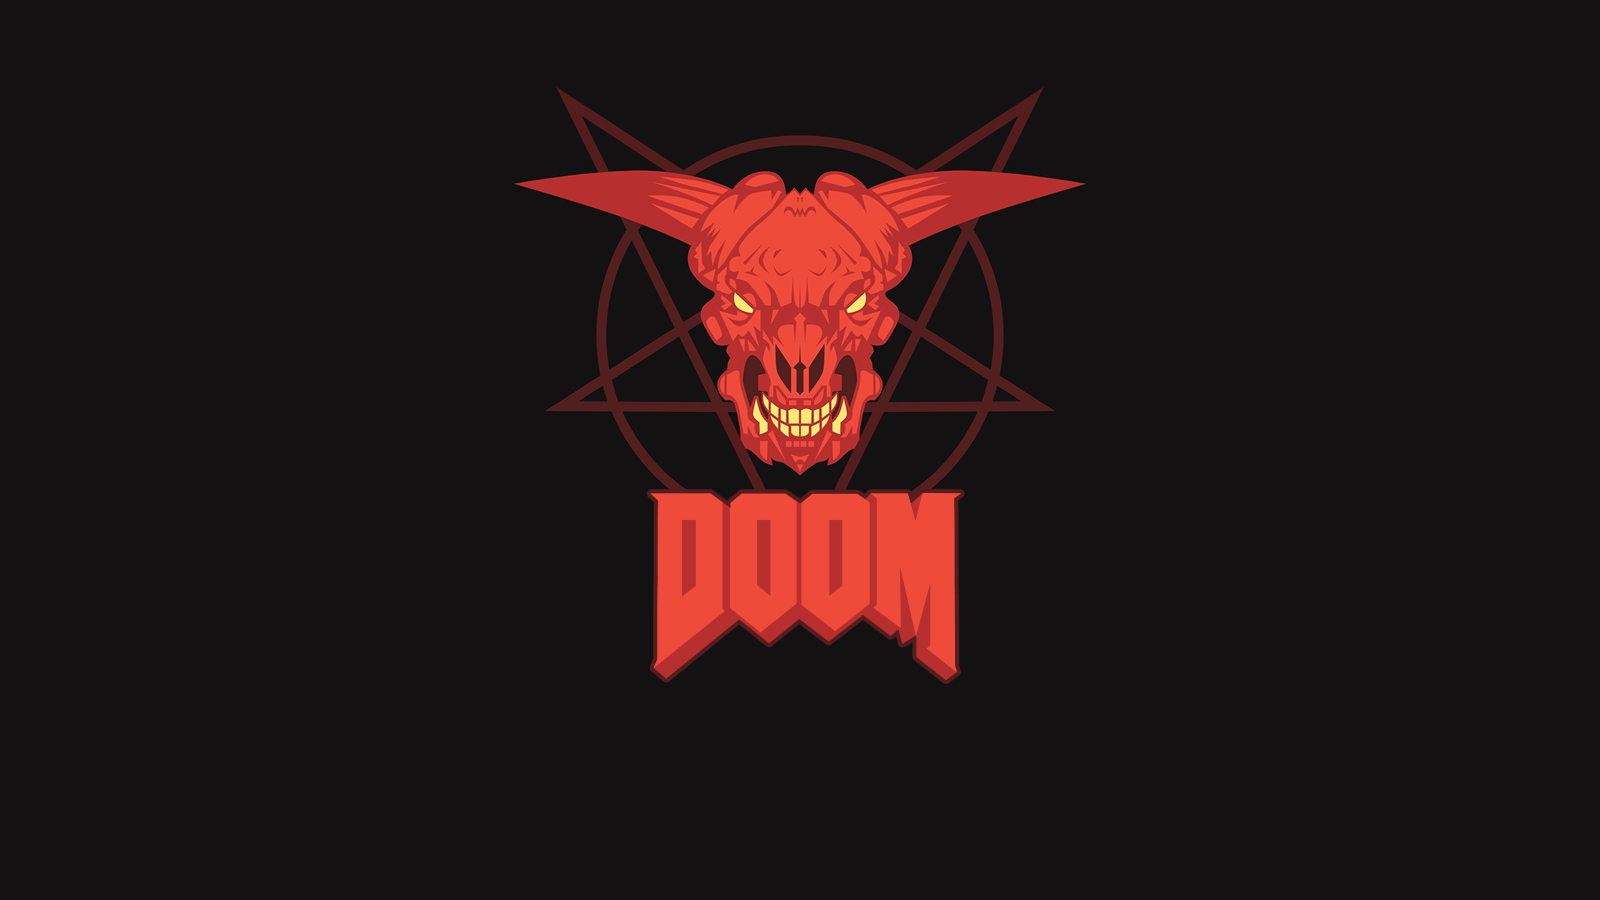 50+ HD DOOM Wallpapers For Desktop (2019) | TopxBestList